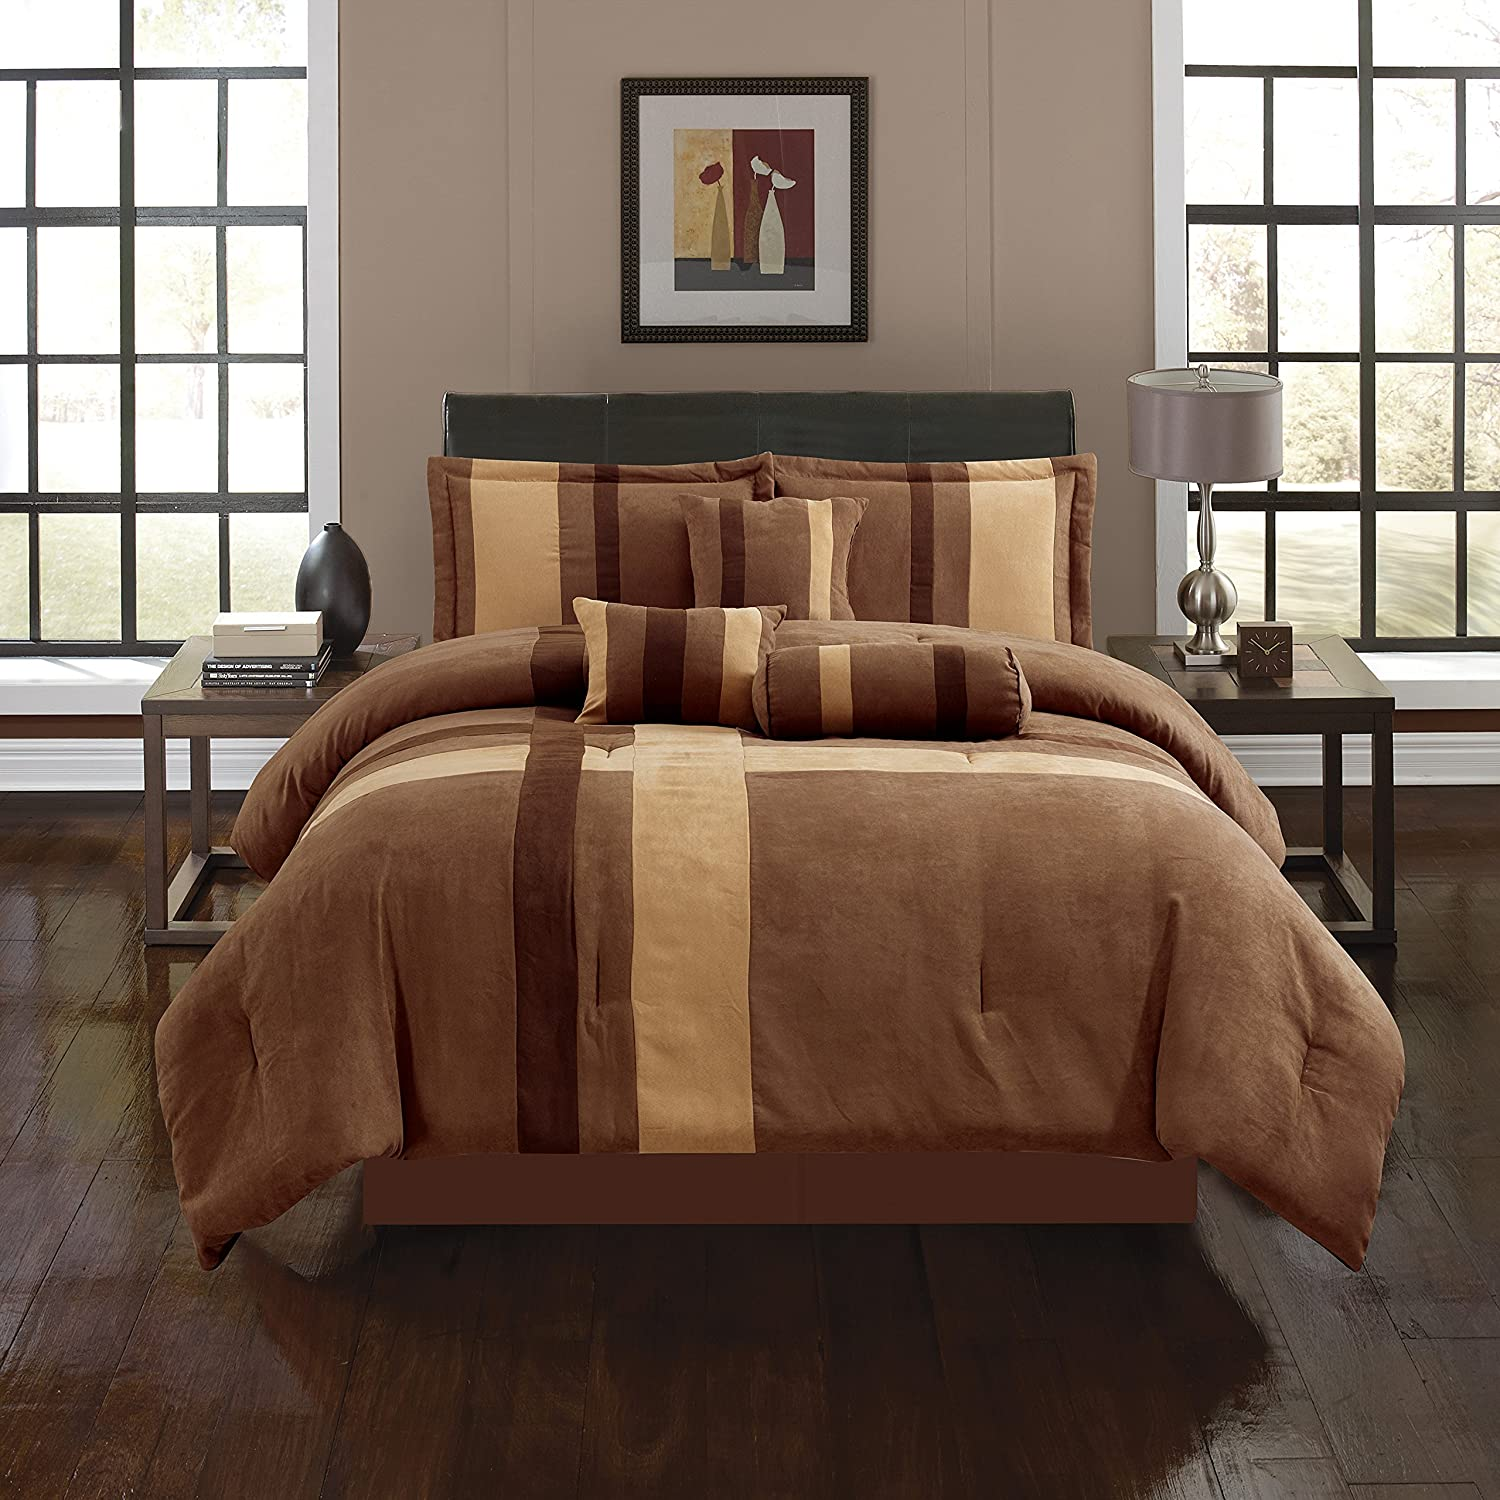 Amazon com empire home brown taupe cross 7 piece solid suede soft comforter set queen size home kitchen